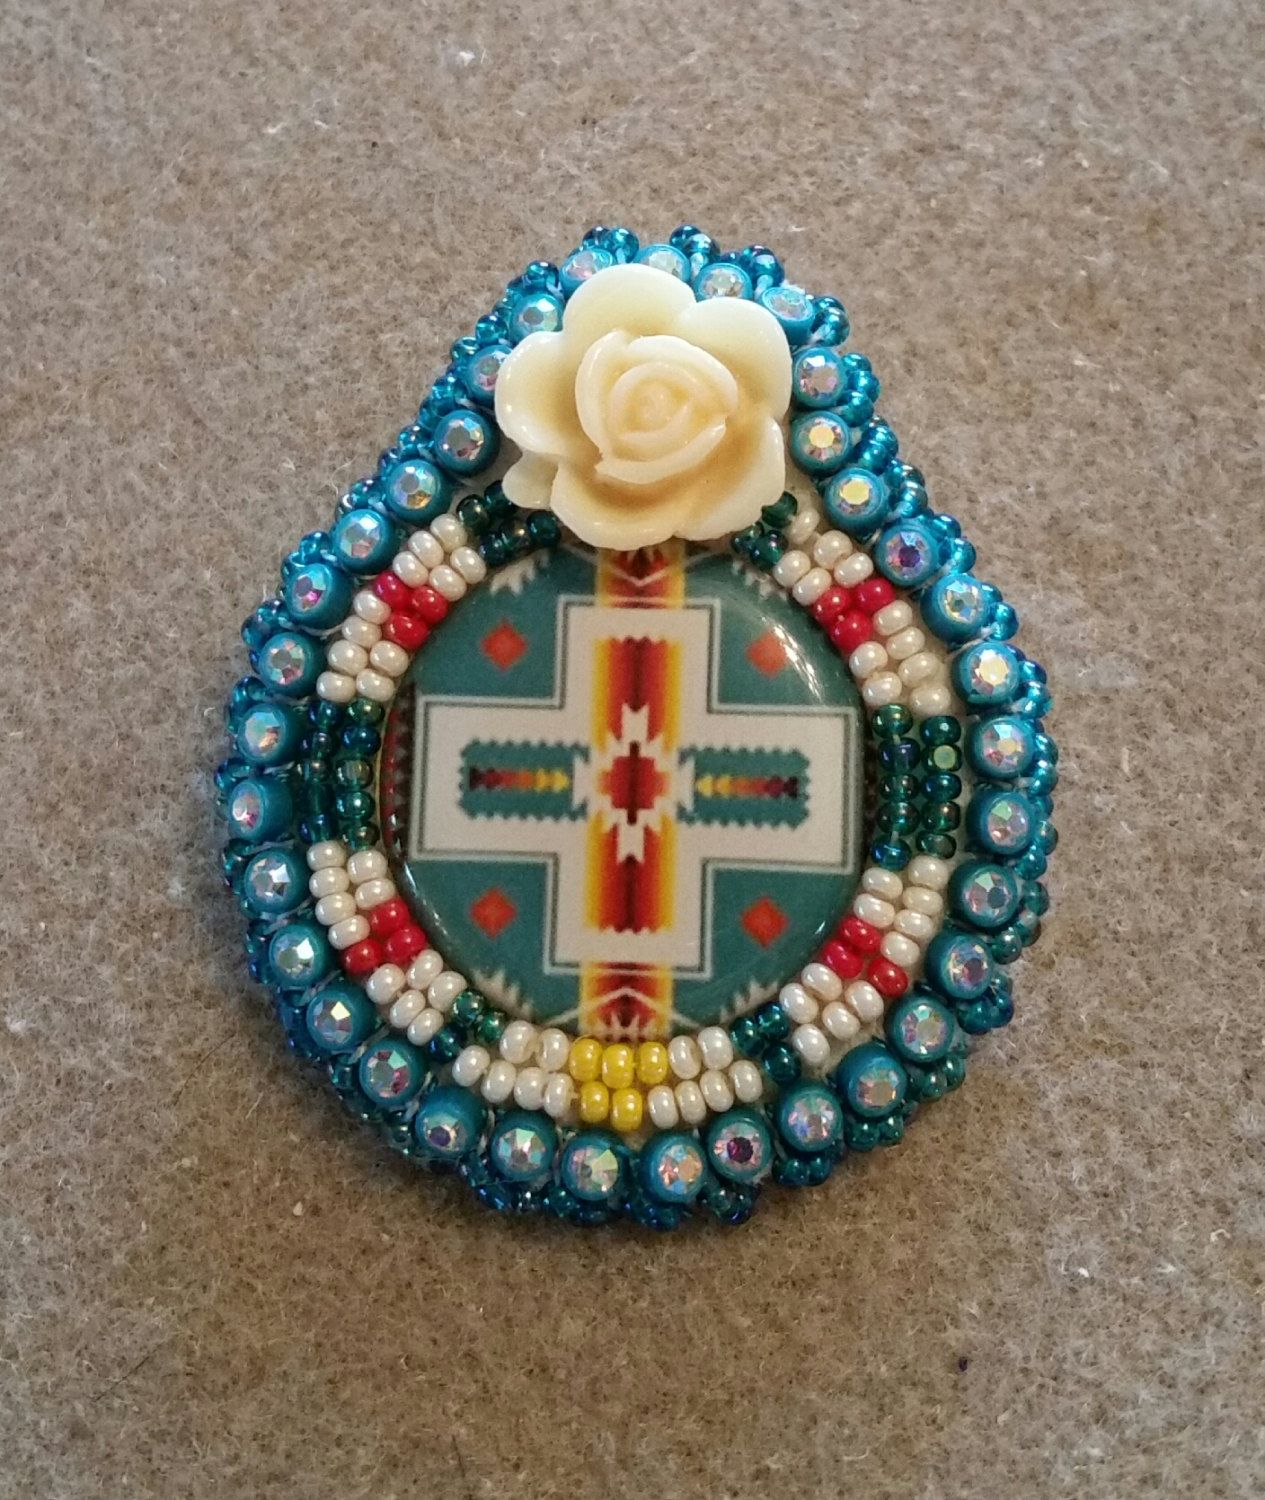 Native American Beaded Earrings with a Pendleton blanket design cabochon  and epoxy flower by AweyoDesigns on Etsy